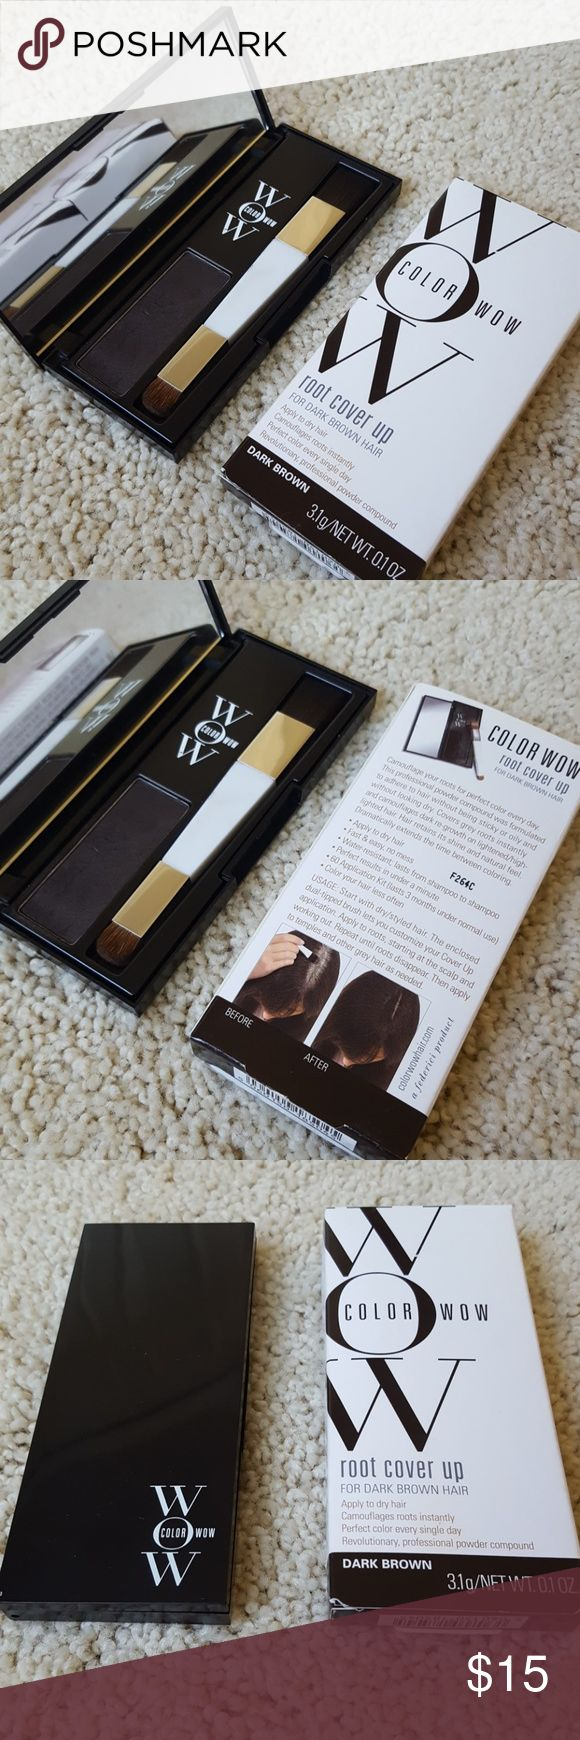 Wow Root Cover Up for dark brown hair Wow Root Cover Up for dark brown hair. Water - resistant lasting from shampoo to shampoo. Goes on like eyeshadow or brow fill-in. Comes from a smoke- and pet-free home. Wow Makeup Brushes & Tools